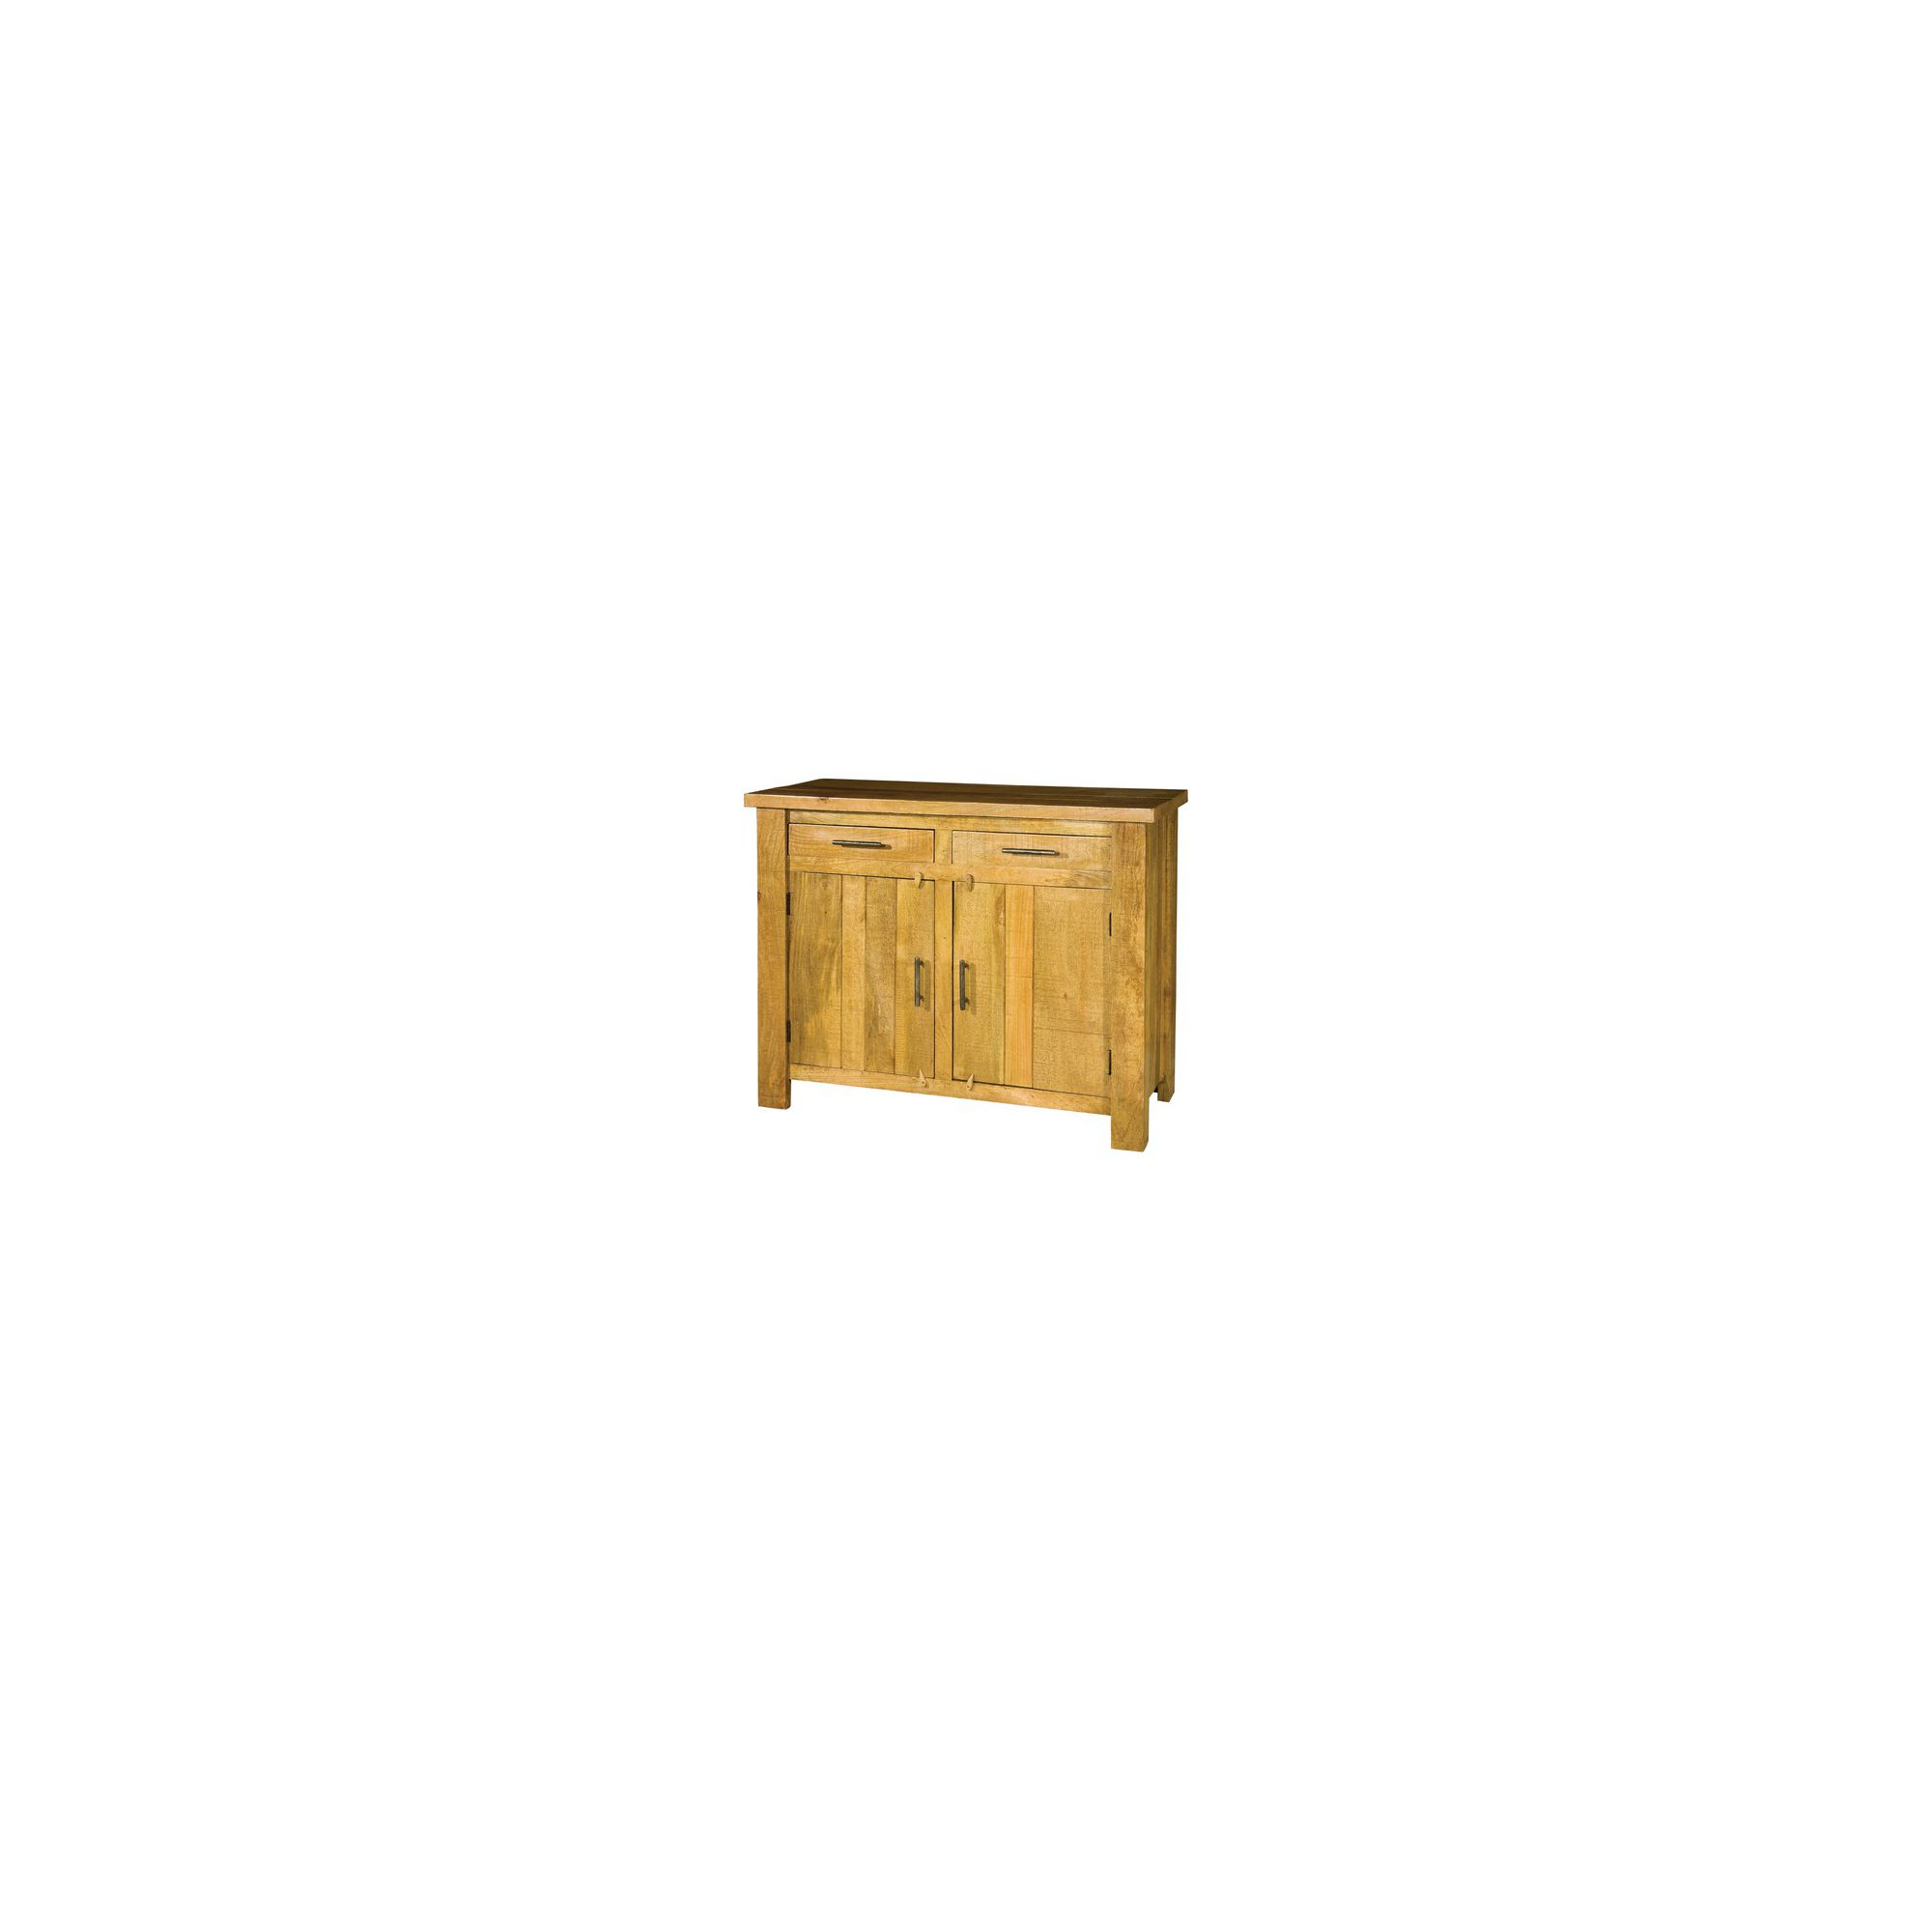 Alterton Furniture Savernake Dresser Base at Tesco Direct